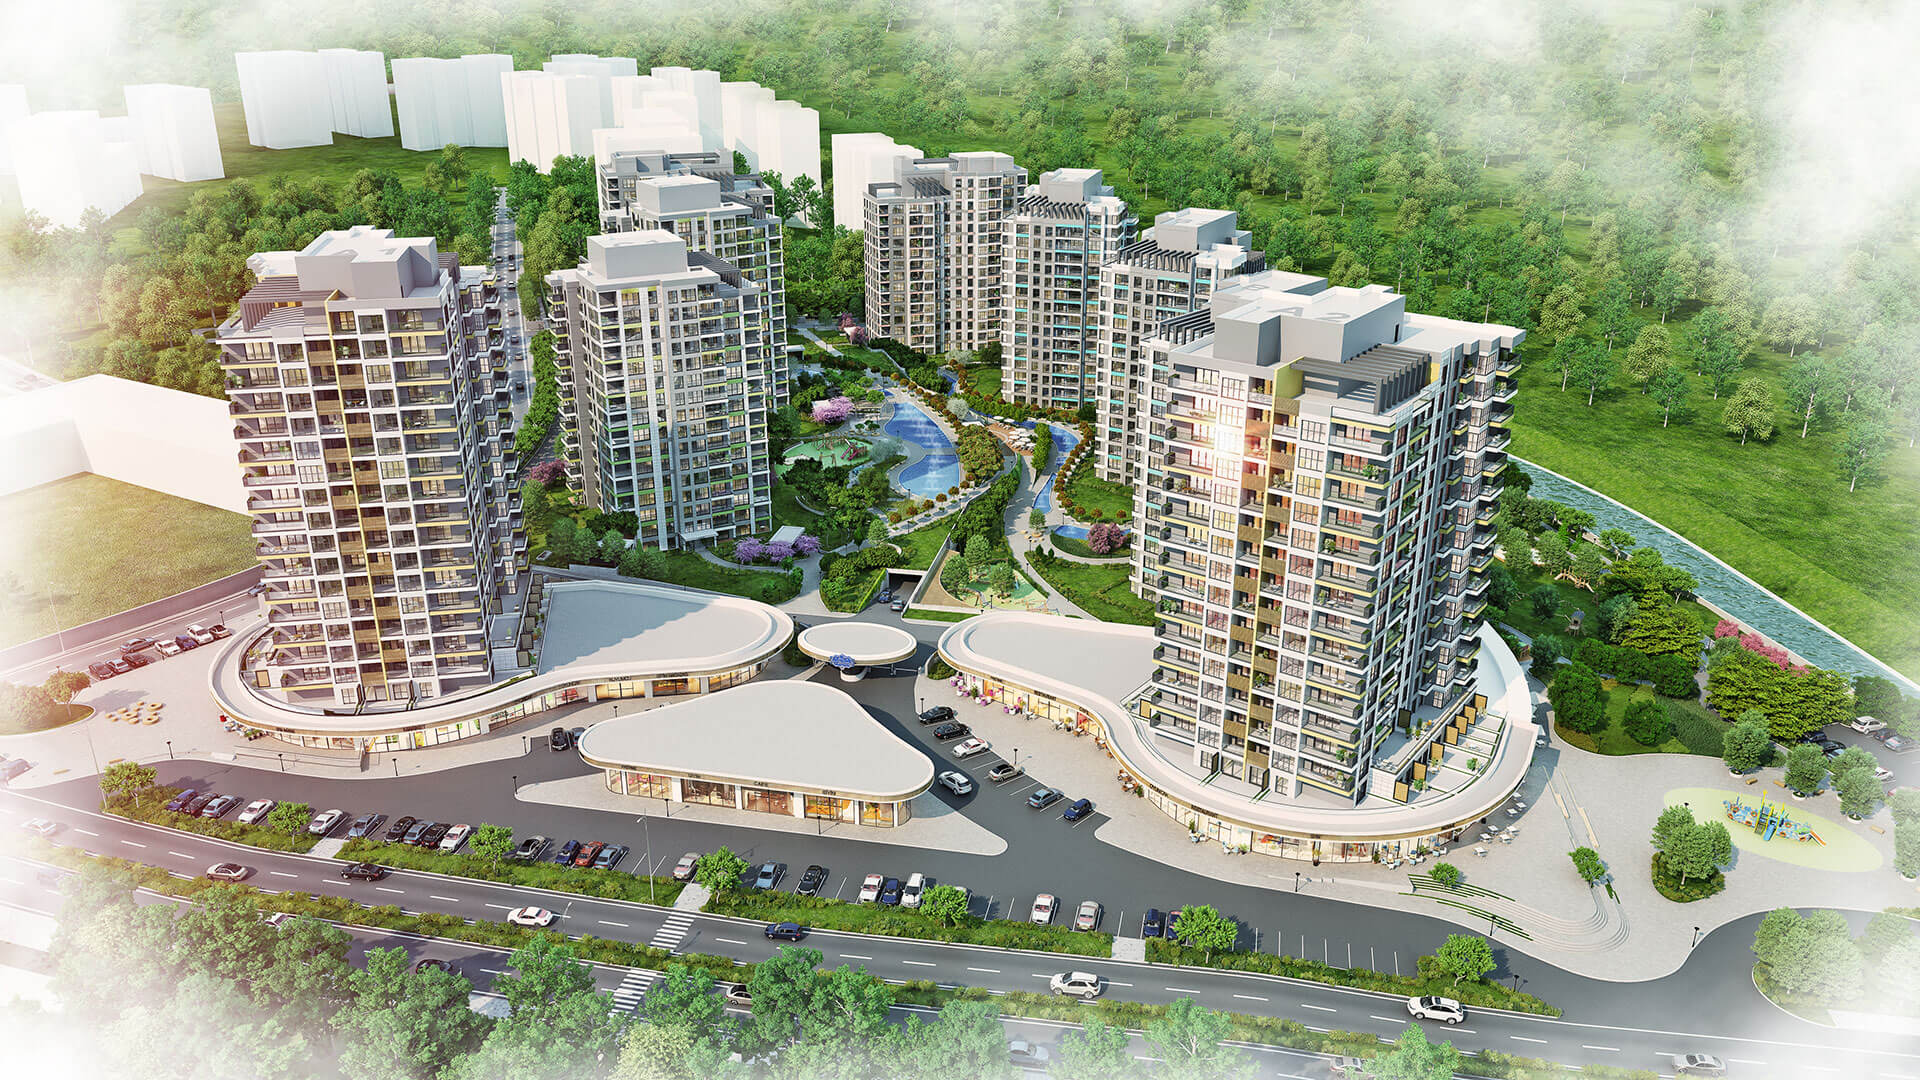 Park Mavera-3, where the Real Estate Certificate System is Applied for the First Time, Joins Aironn's References